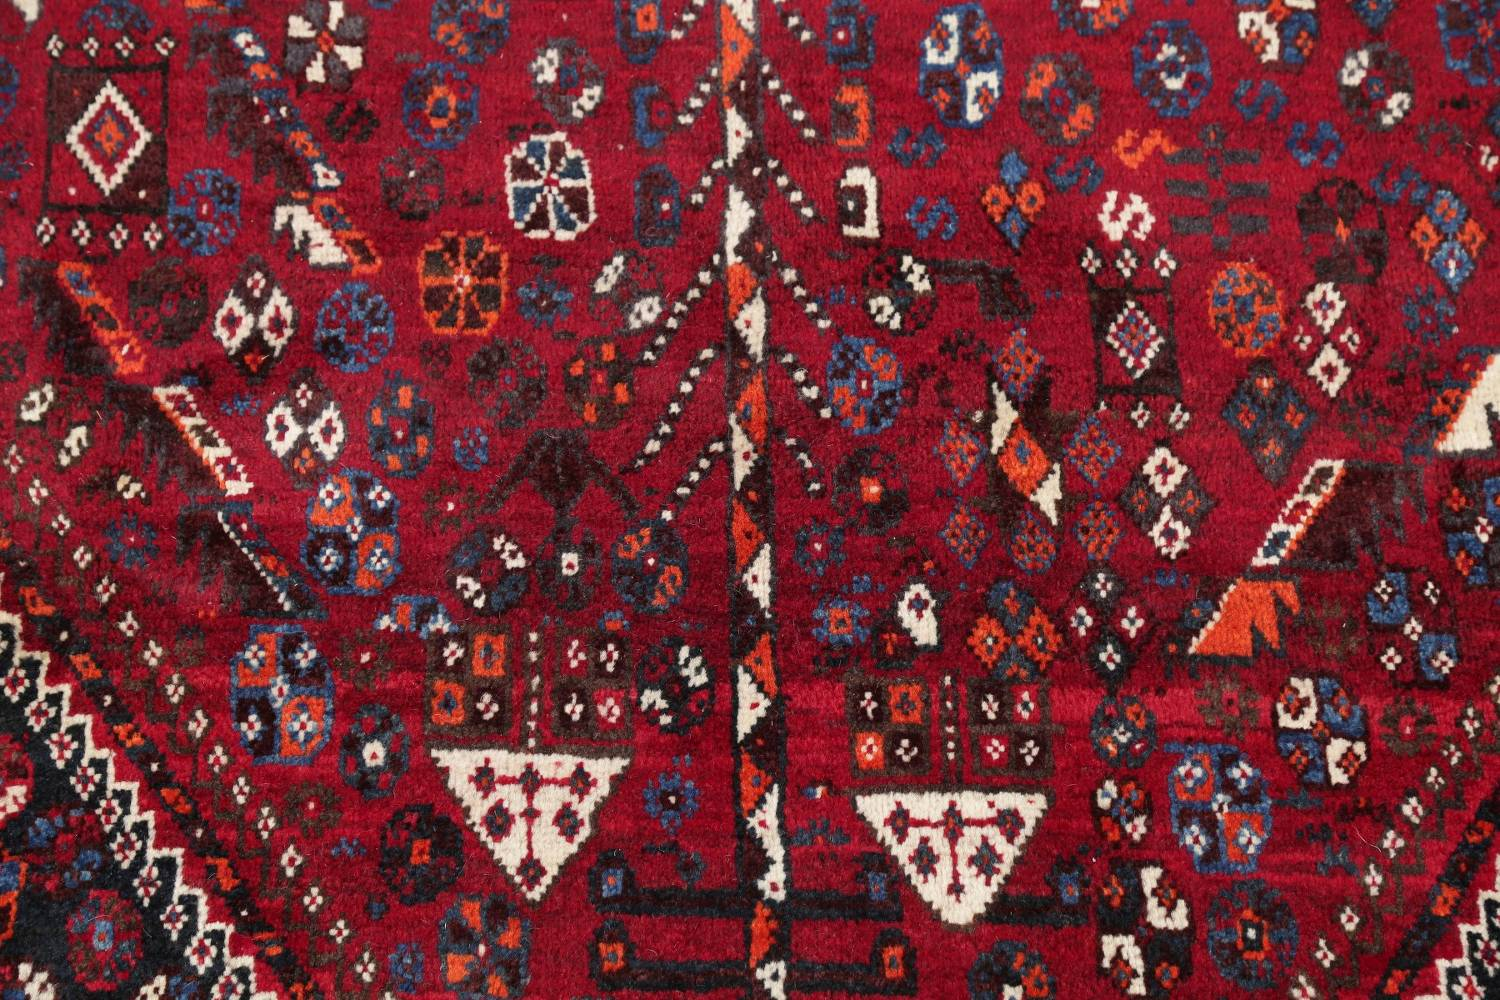 Antique Red Tribal Geometric Qashqai Persian Hand-Knotted 5x8 Wool Area Rug image 8